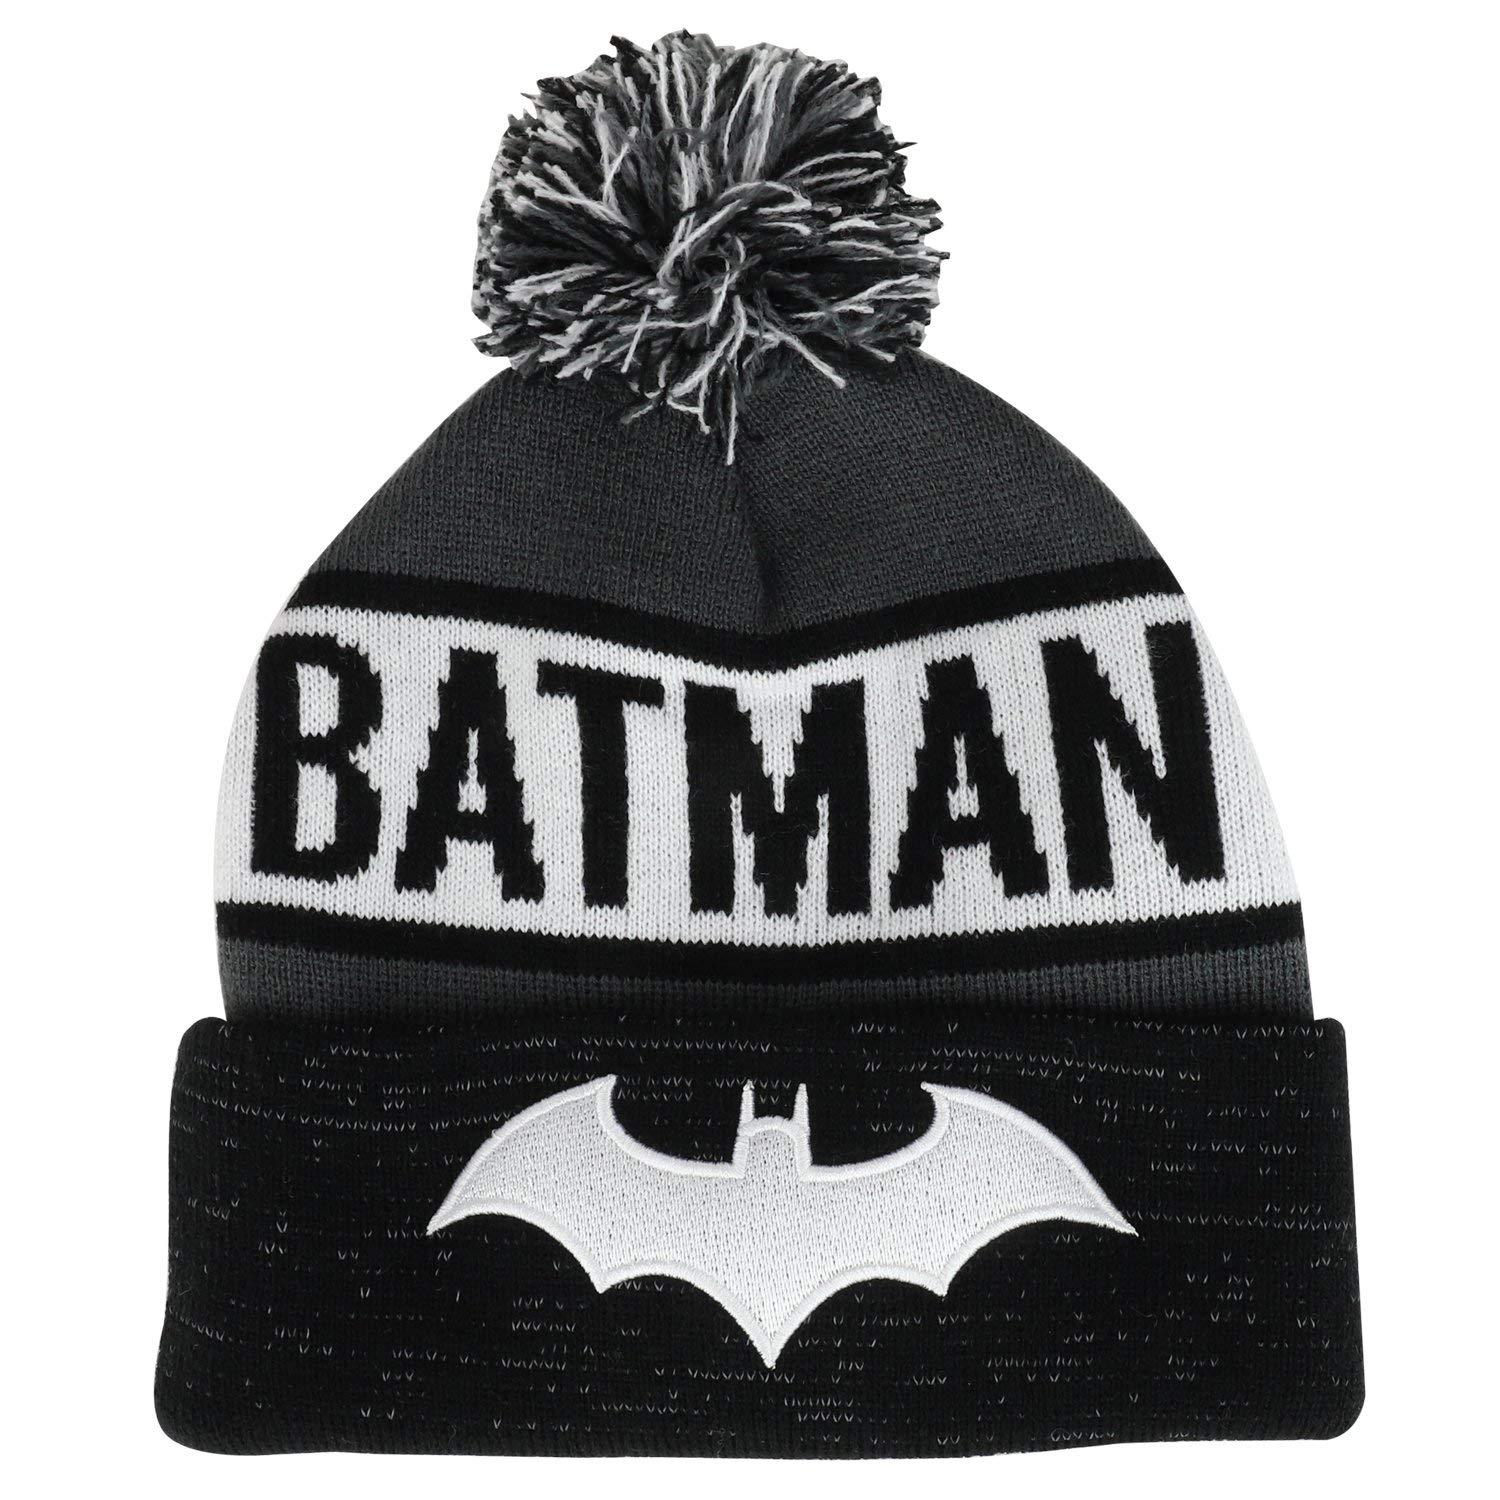 5afd3370a8481 Get Quotations · Armycrew Batman Logo Embroidered Long Cuffed Beanie With  Pom Pom